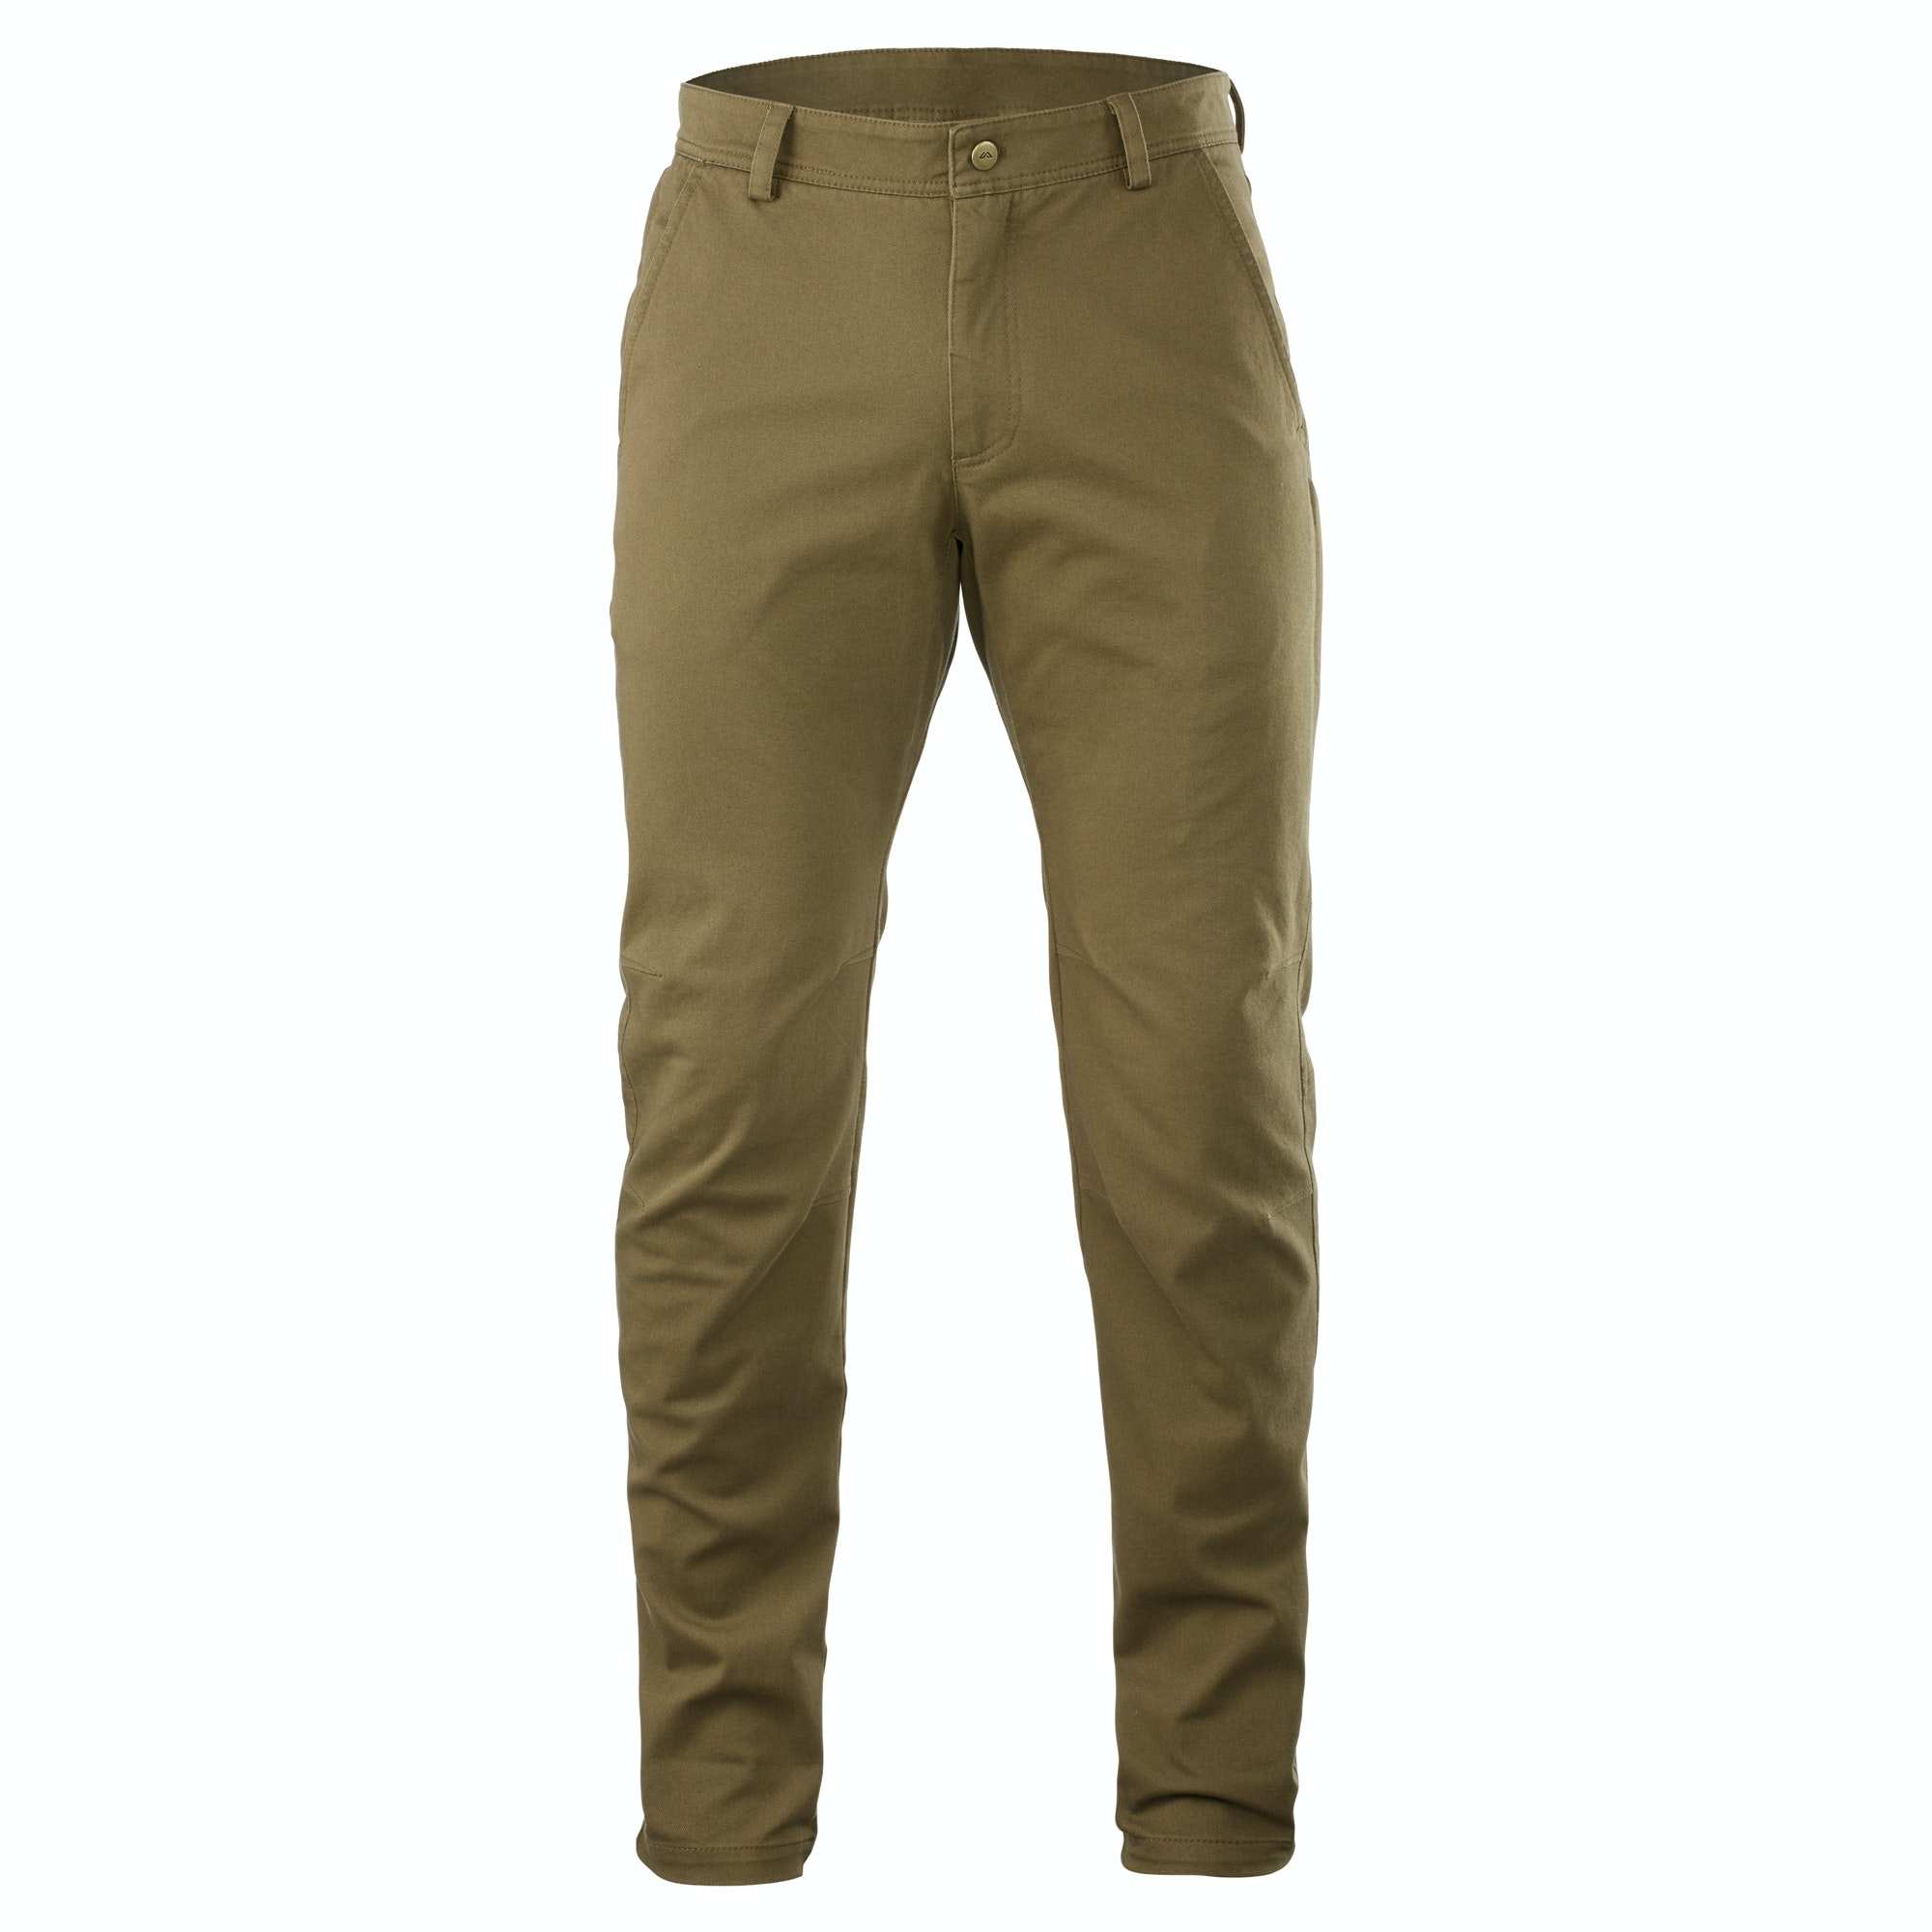 Find great deals on eBay for mens casual cotton pants. Shop with confidence.